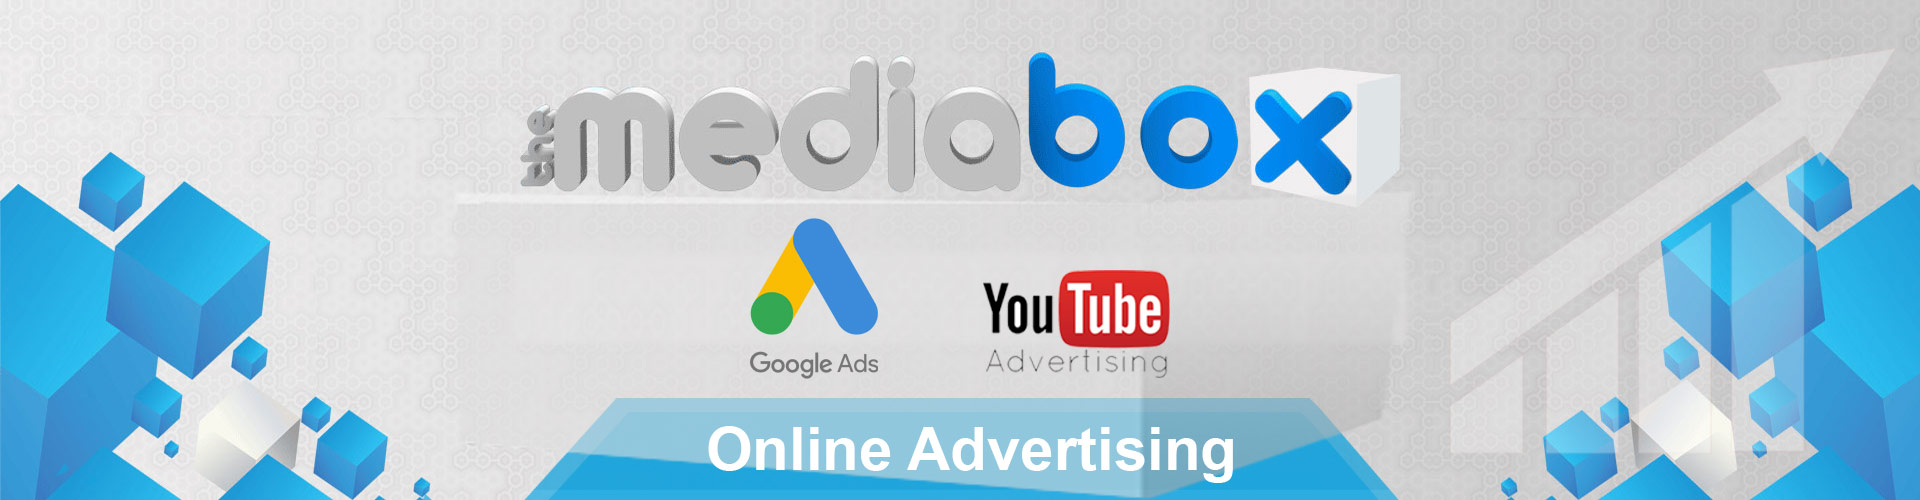 the-mediabox-online-advertising-slider